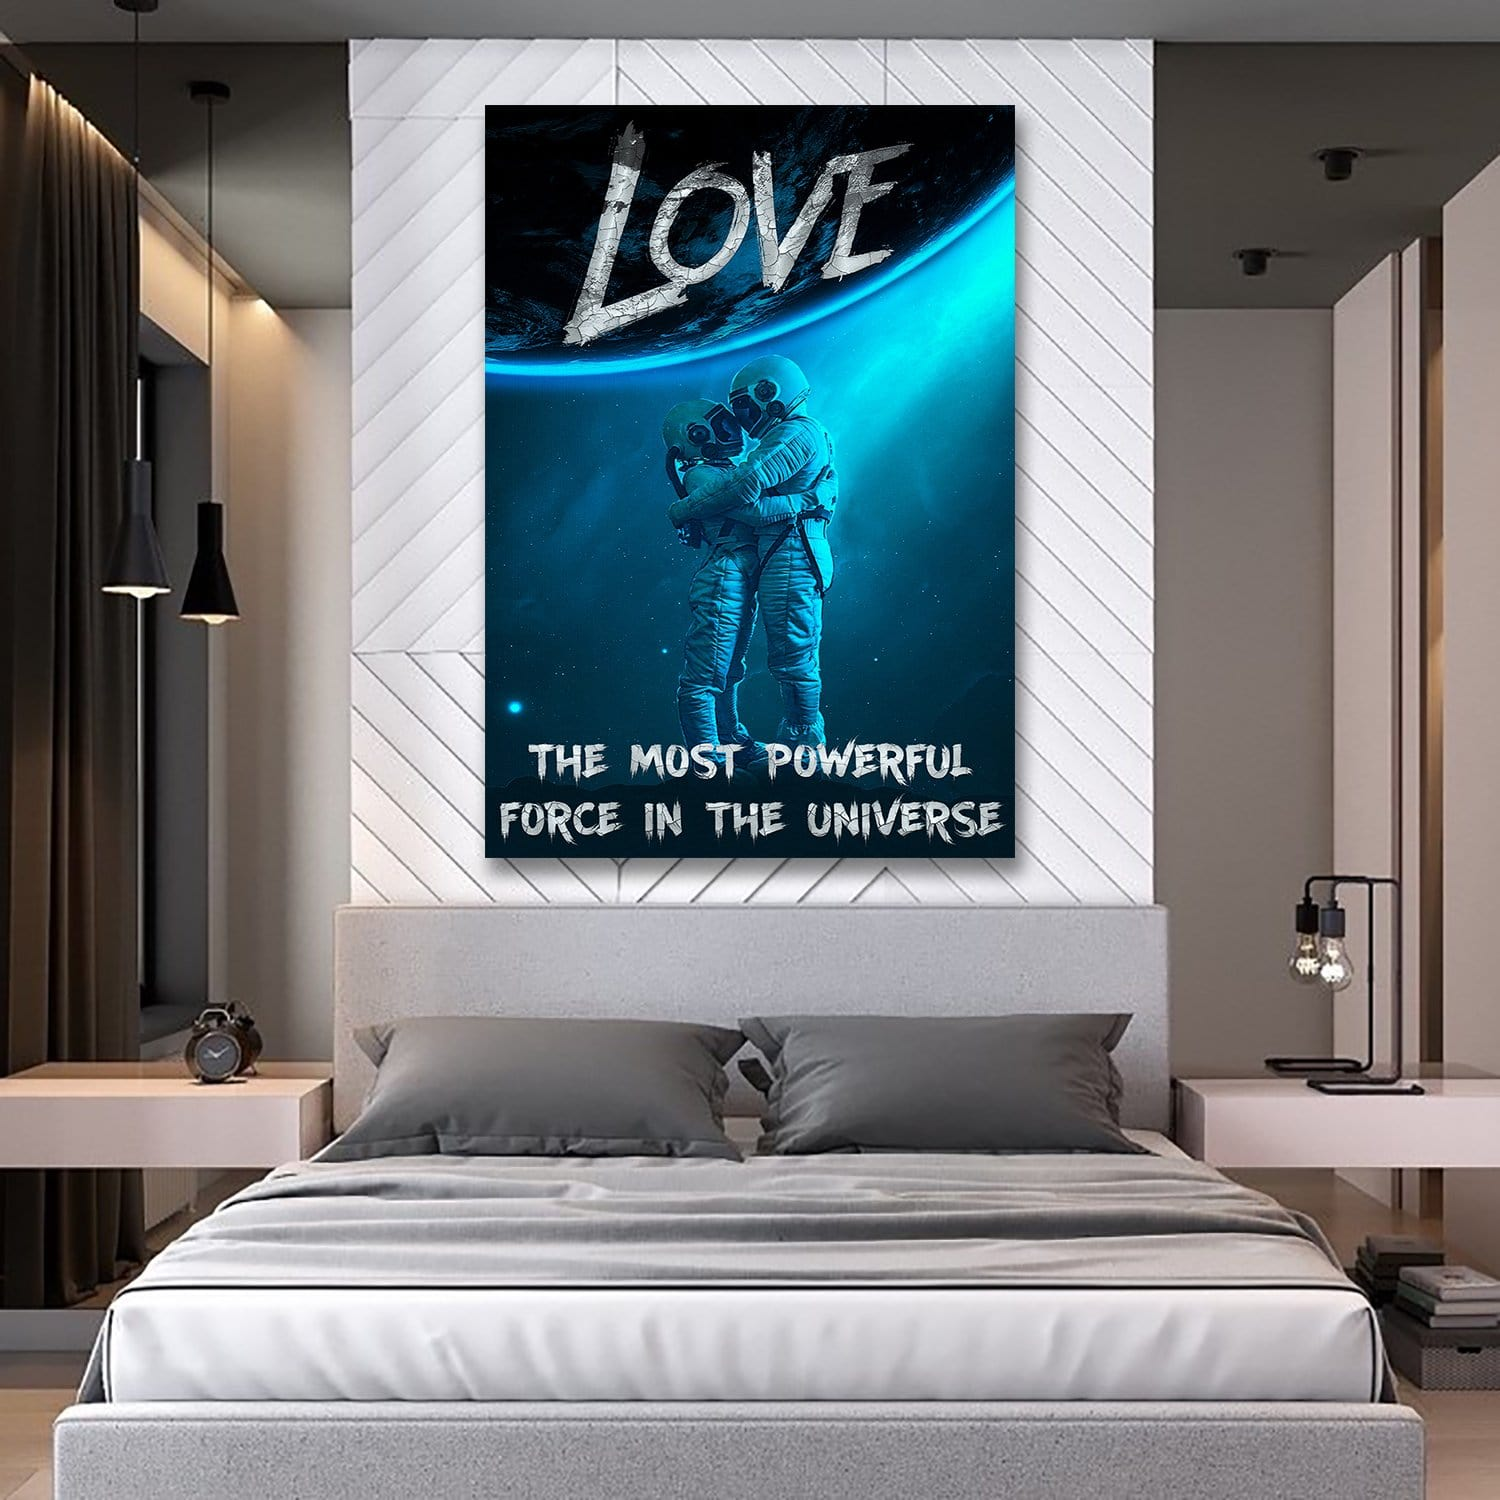 Love The Most Powerful Force - Framed Canvas Painting Wall Art Office Decor, large modern pop artwork for home or office, Entrepreneur Inspirational and motivational Quotes on Canvas great for man cave or home. Perfect for Artwork Addicts. Made in USA, FREE Shipping.